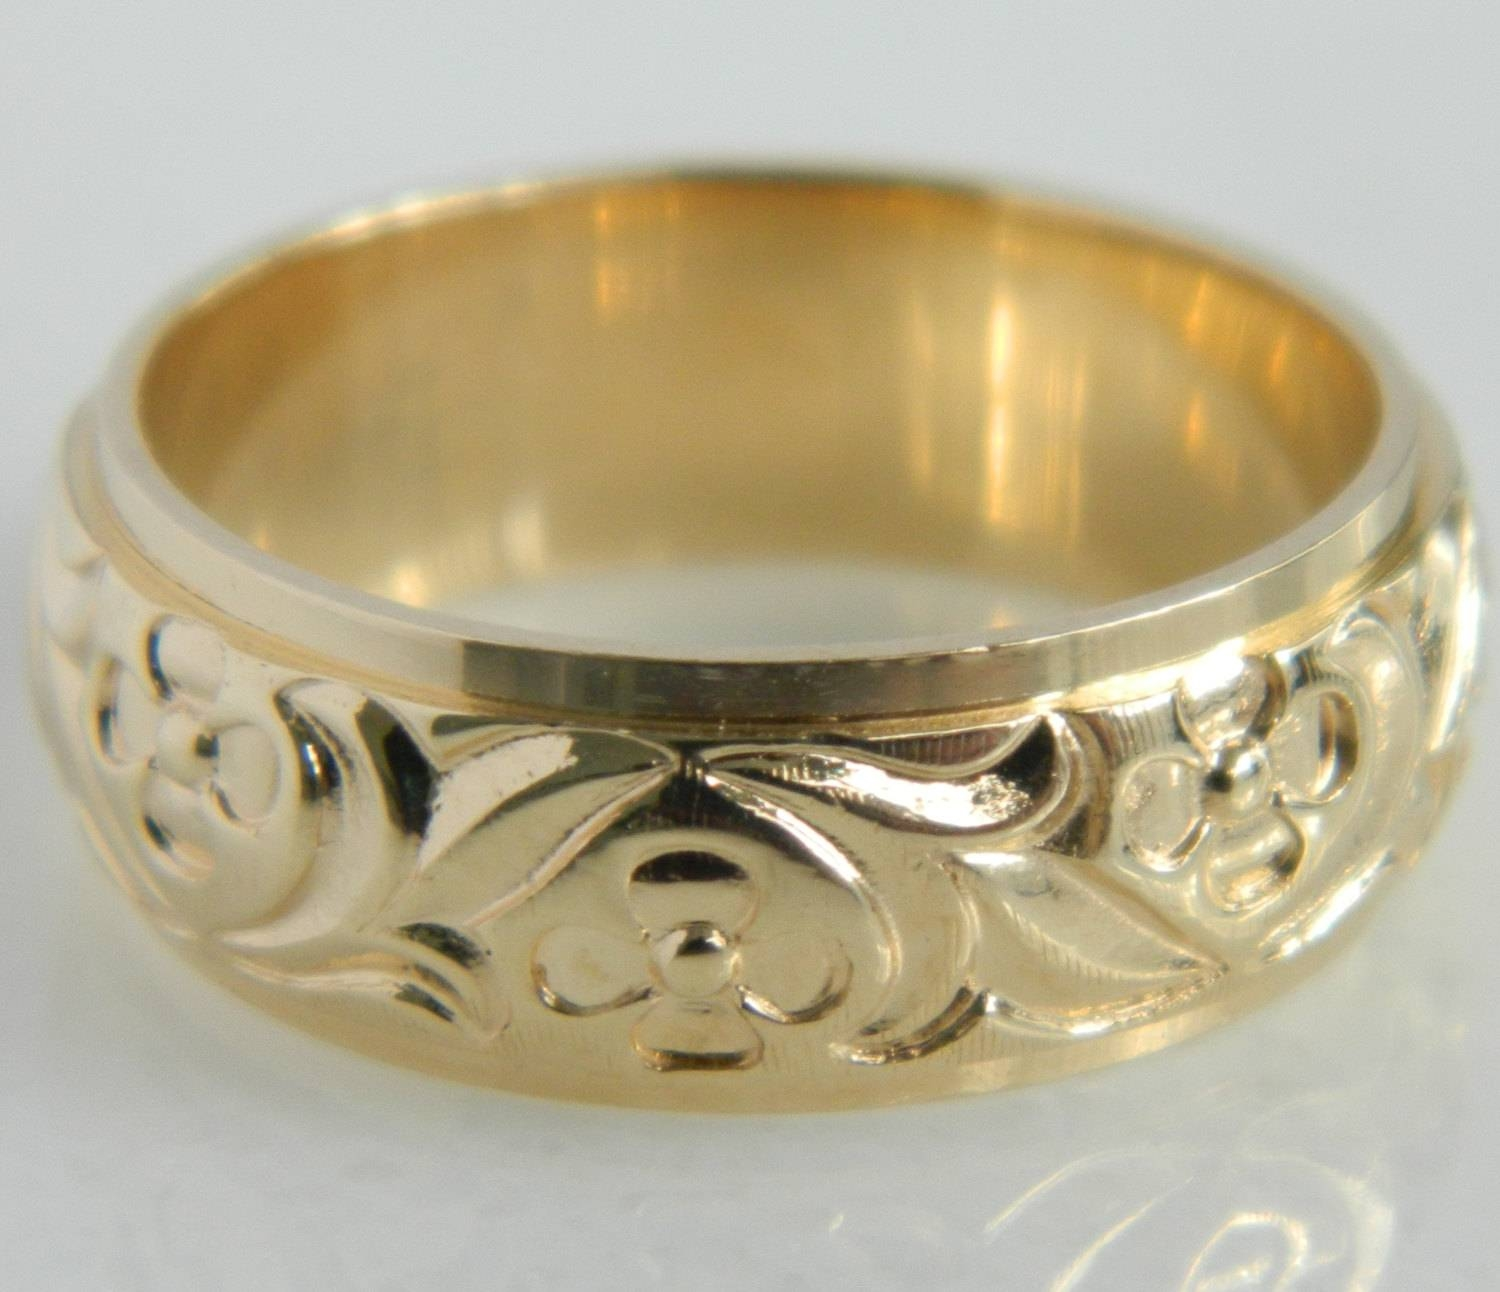 Vintage 14k Gold Floral Art Carved Wedding Band Regarding Carved Wedding Bands (View 3 of 15)